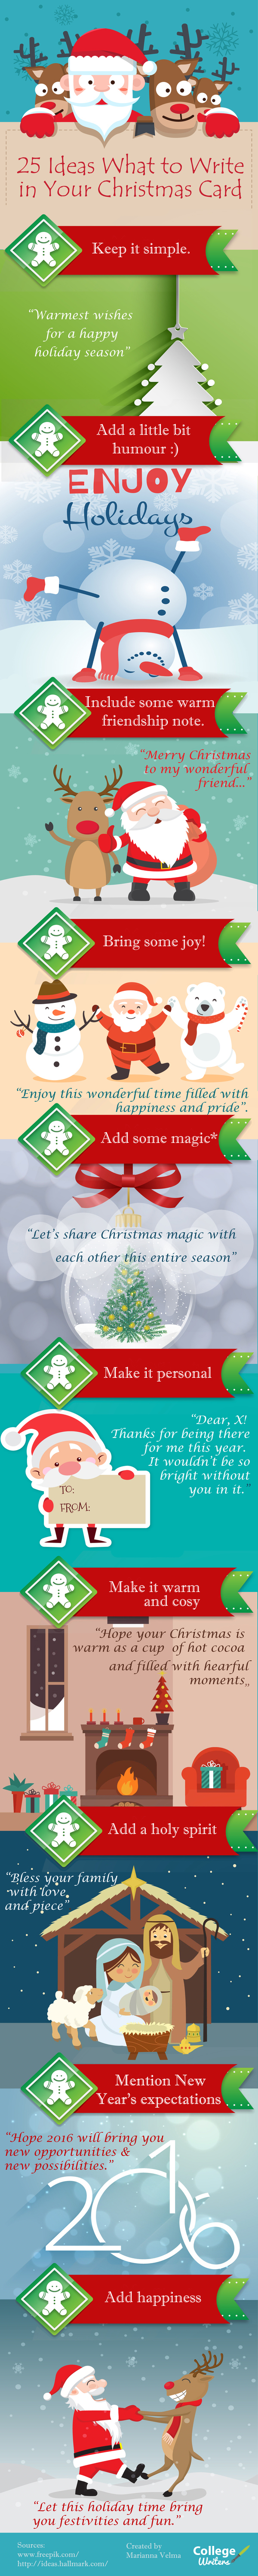 how_to_write_christmas_card-new